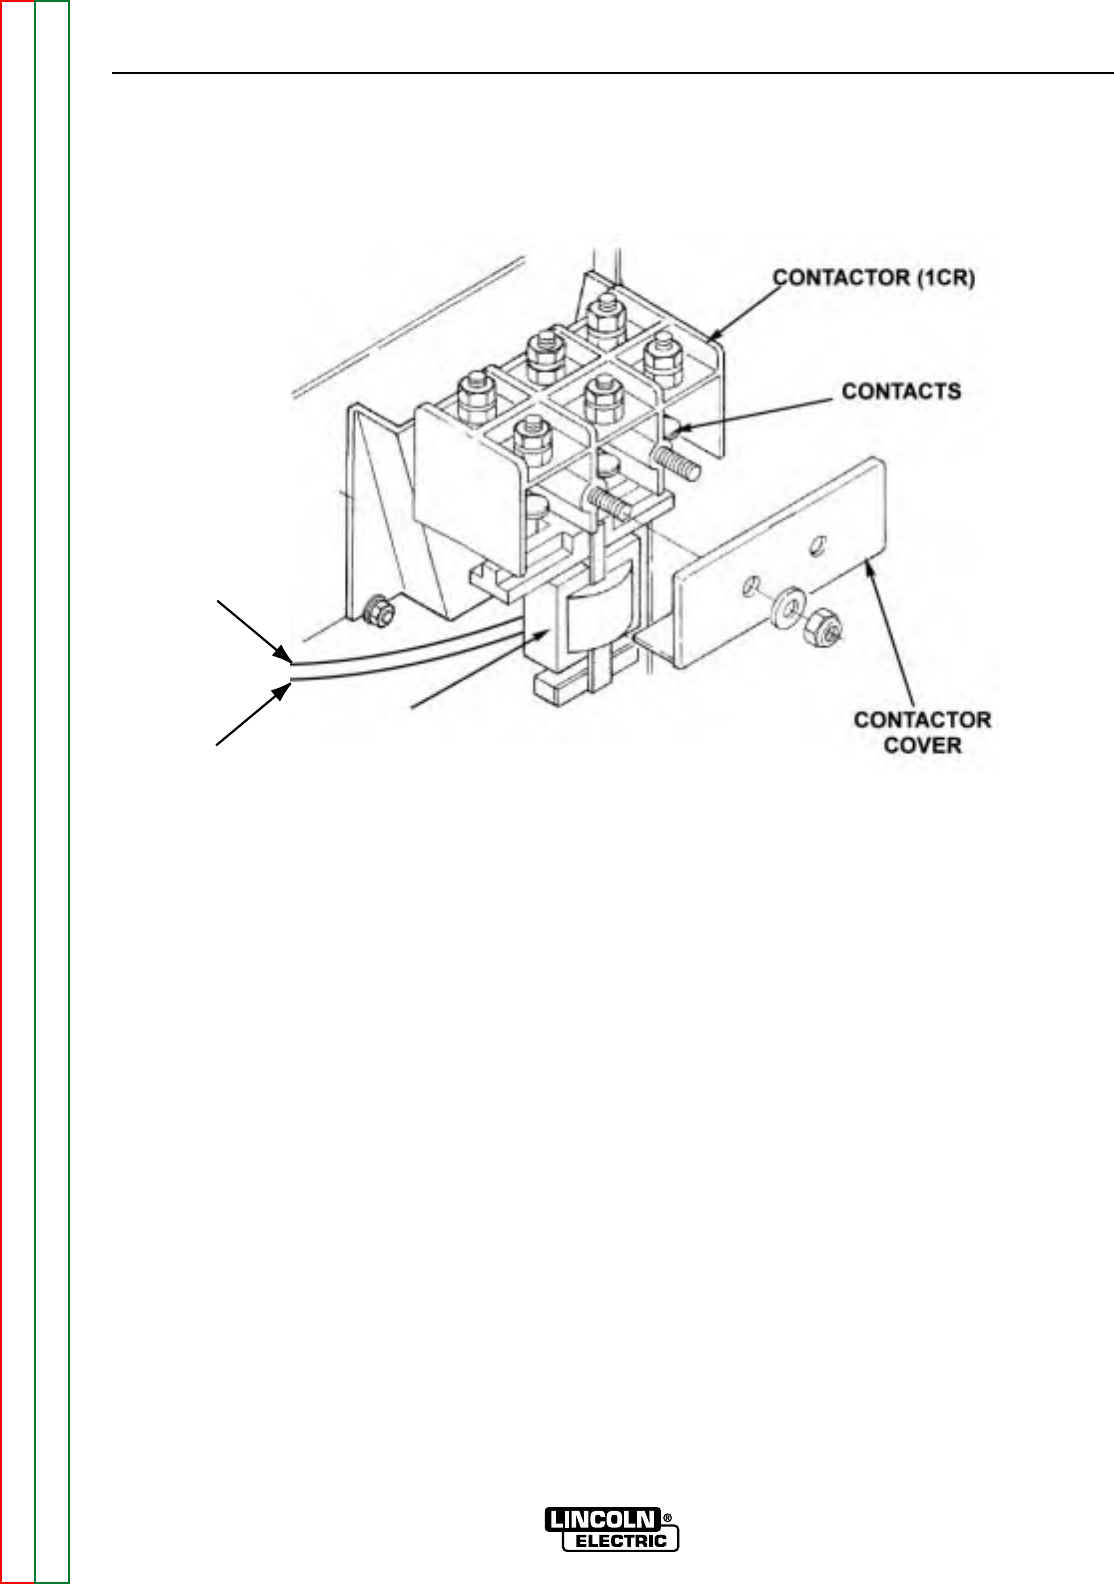 Lincoln Electric Multi Source Svm155 A Users Manual Svm155a Triac How To Design Snubber For Optotriac Electrical Engineering F 47